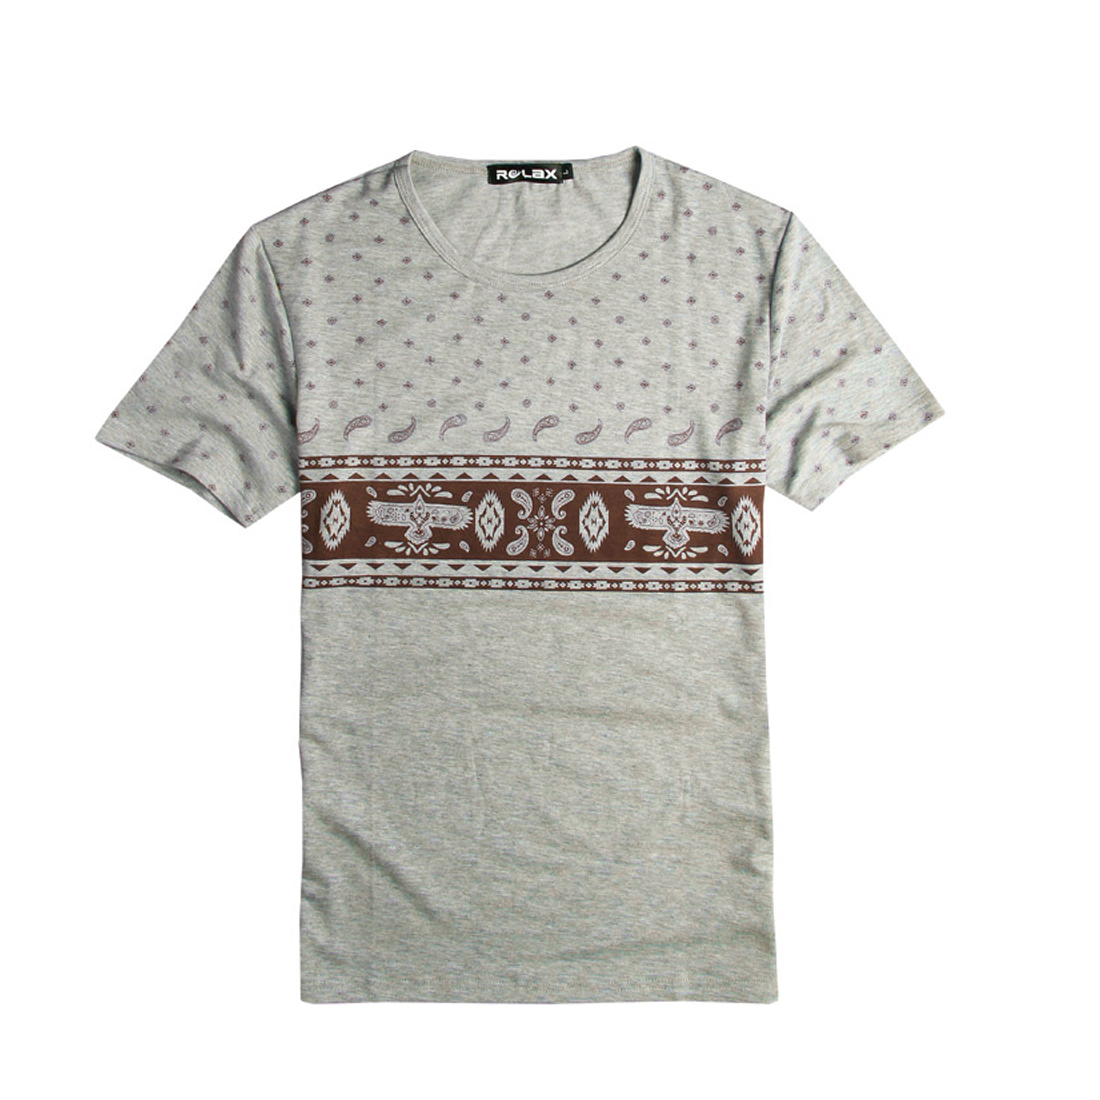 Round Neck Paisly Print Fashioanl Leisure T-Shirt Gray S for Men